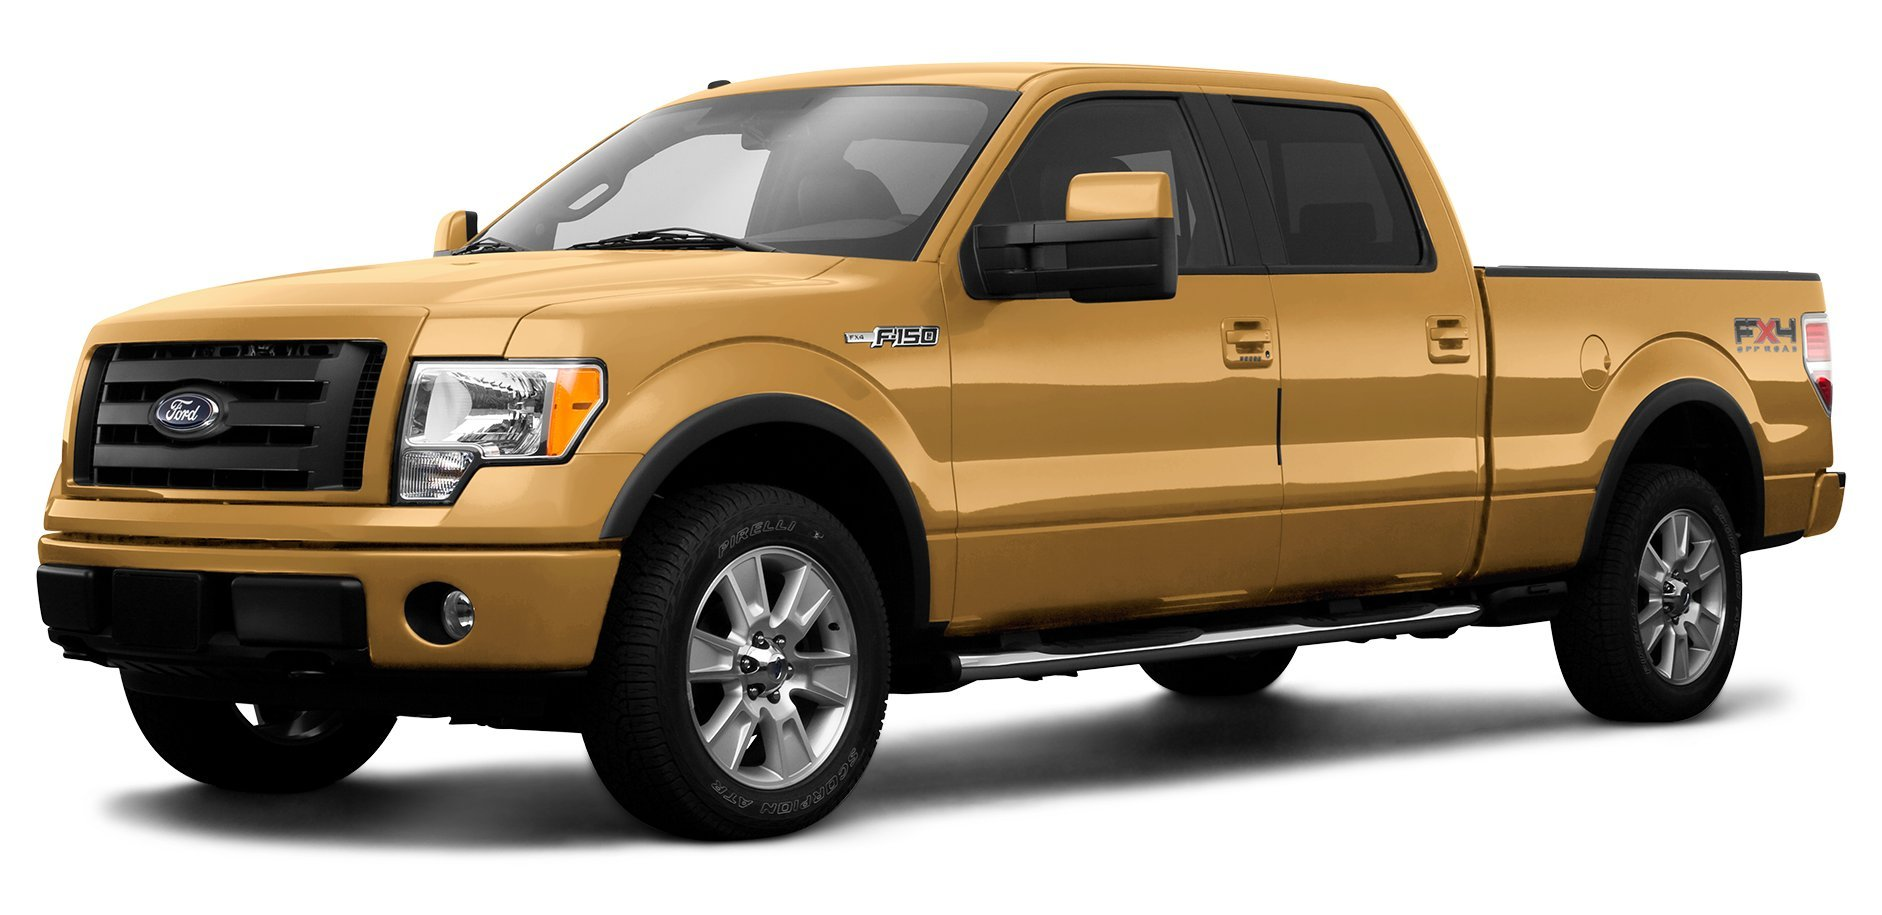 2009 Ford F 150 Reviews Images And Specs Vehicles 1955 F100 Truck Moon Caps Fx4 4 Wheel Drive Supercrew 145